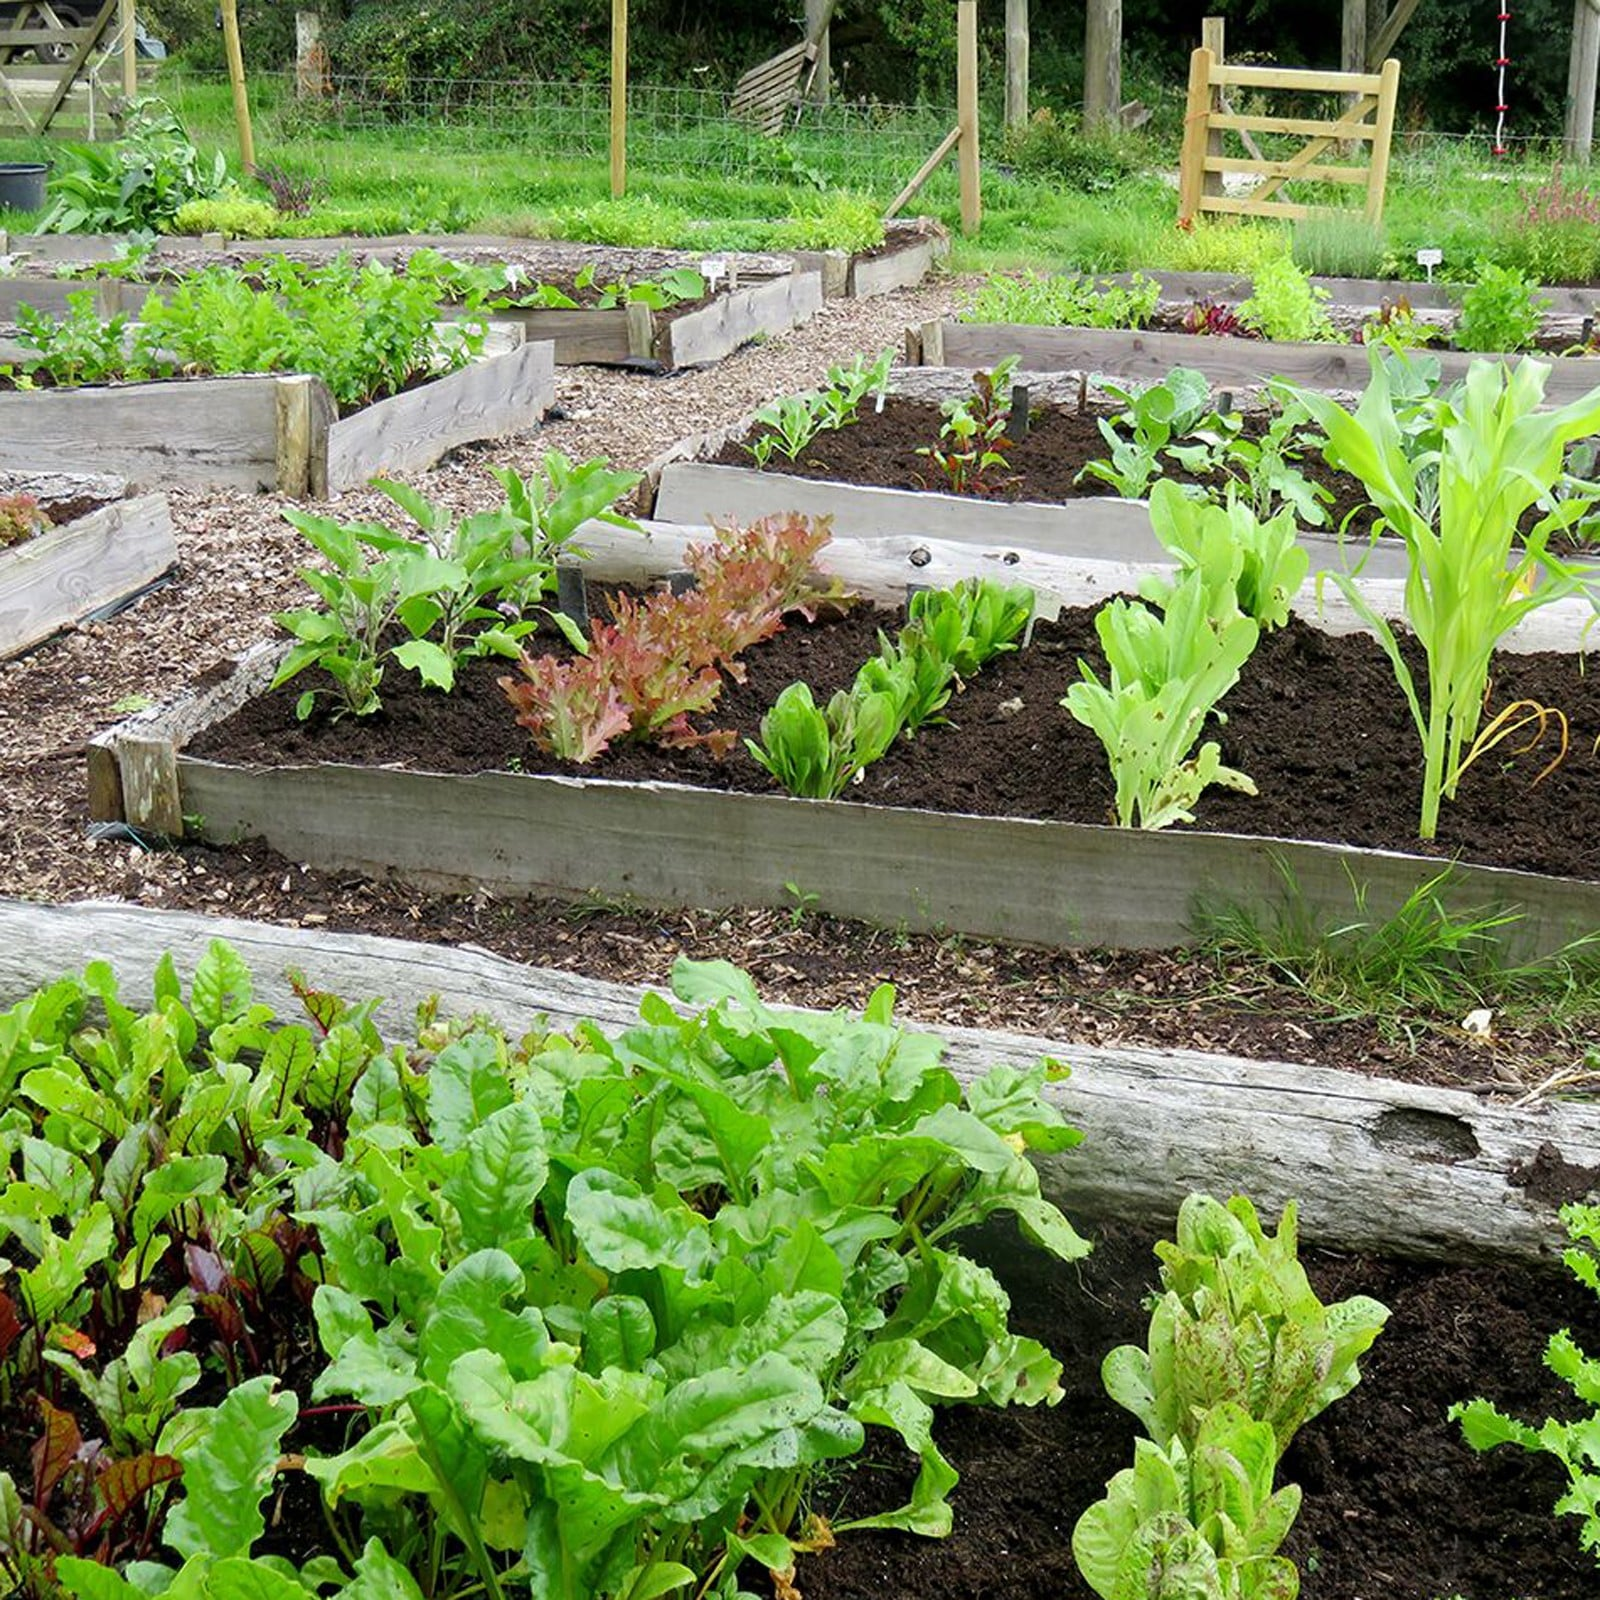 Creating Our First Vegetable Garden Advice Please: Autumn Large Vegetable Patch (310) Plants